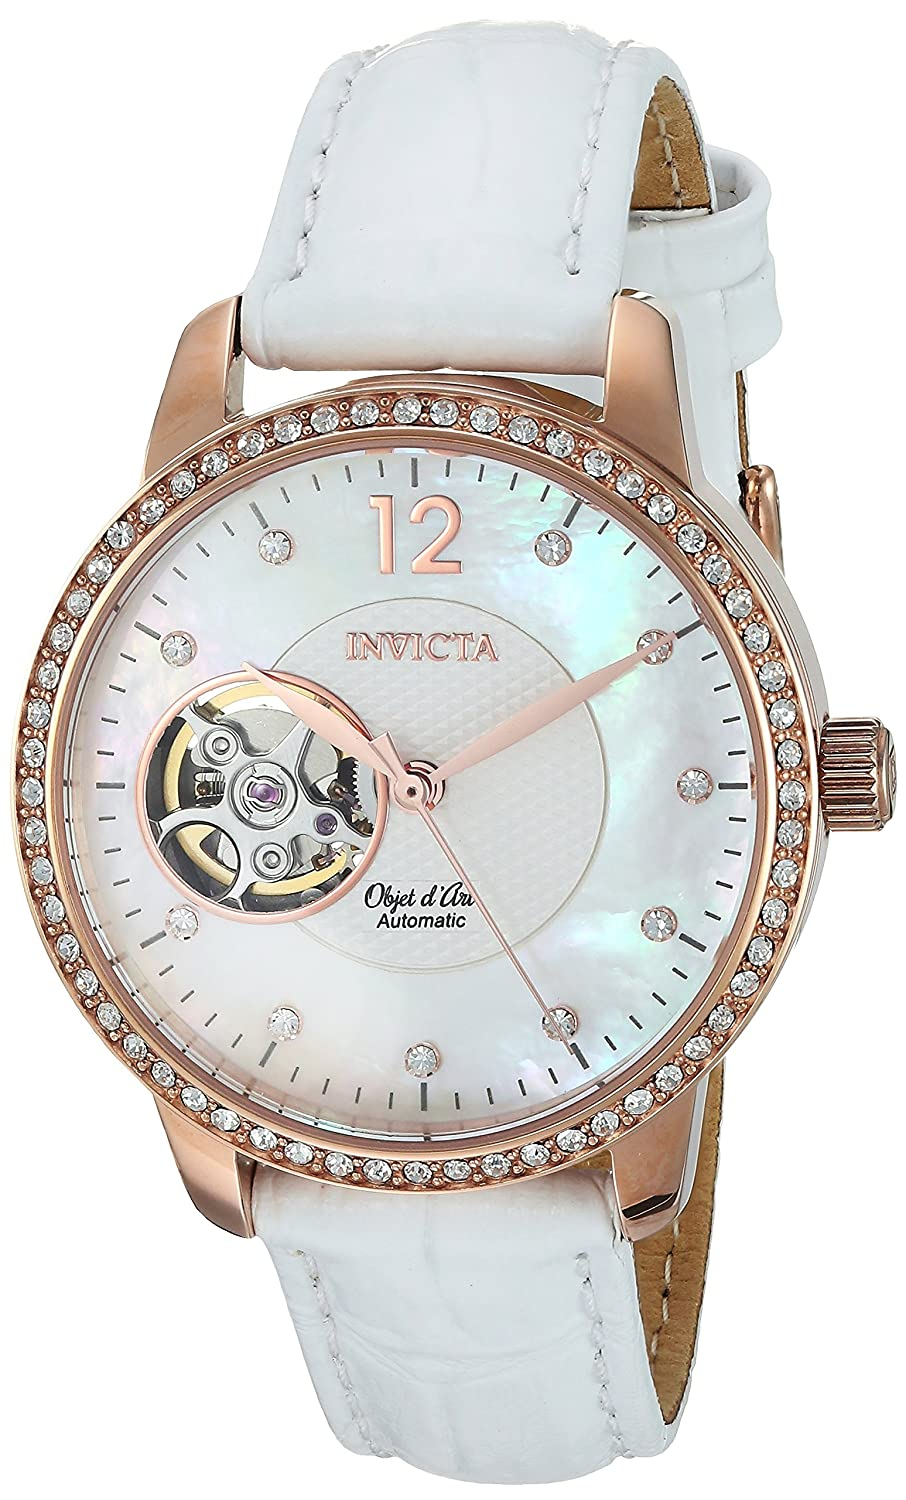 Invicta Women's 'Objet D Art' Automatic Gold and Leather Casual Watch%% Color:White (Model: 22622) B01LK6T65W